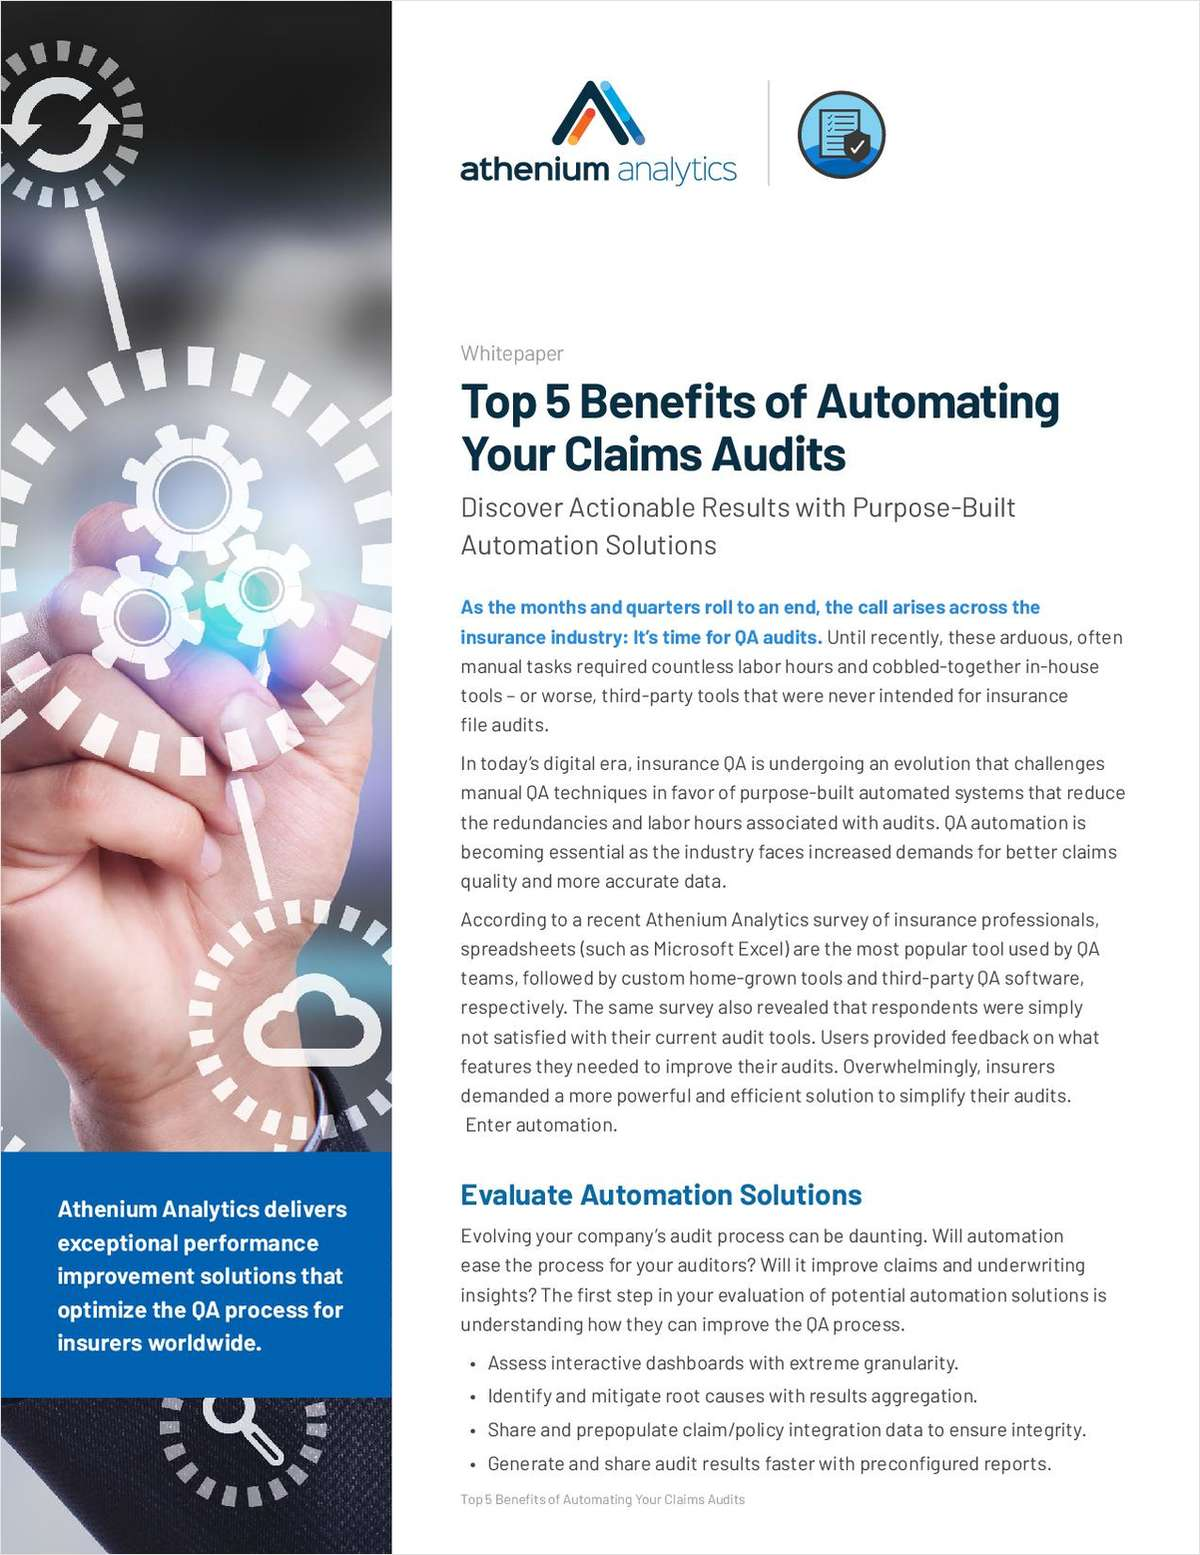 Top 5 Benefits of Automating Your Claims Audits